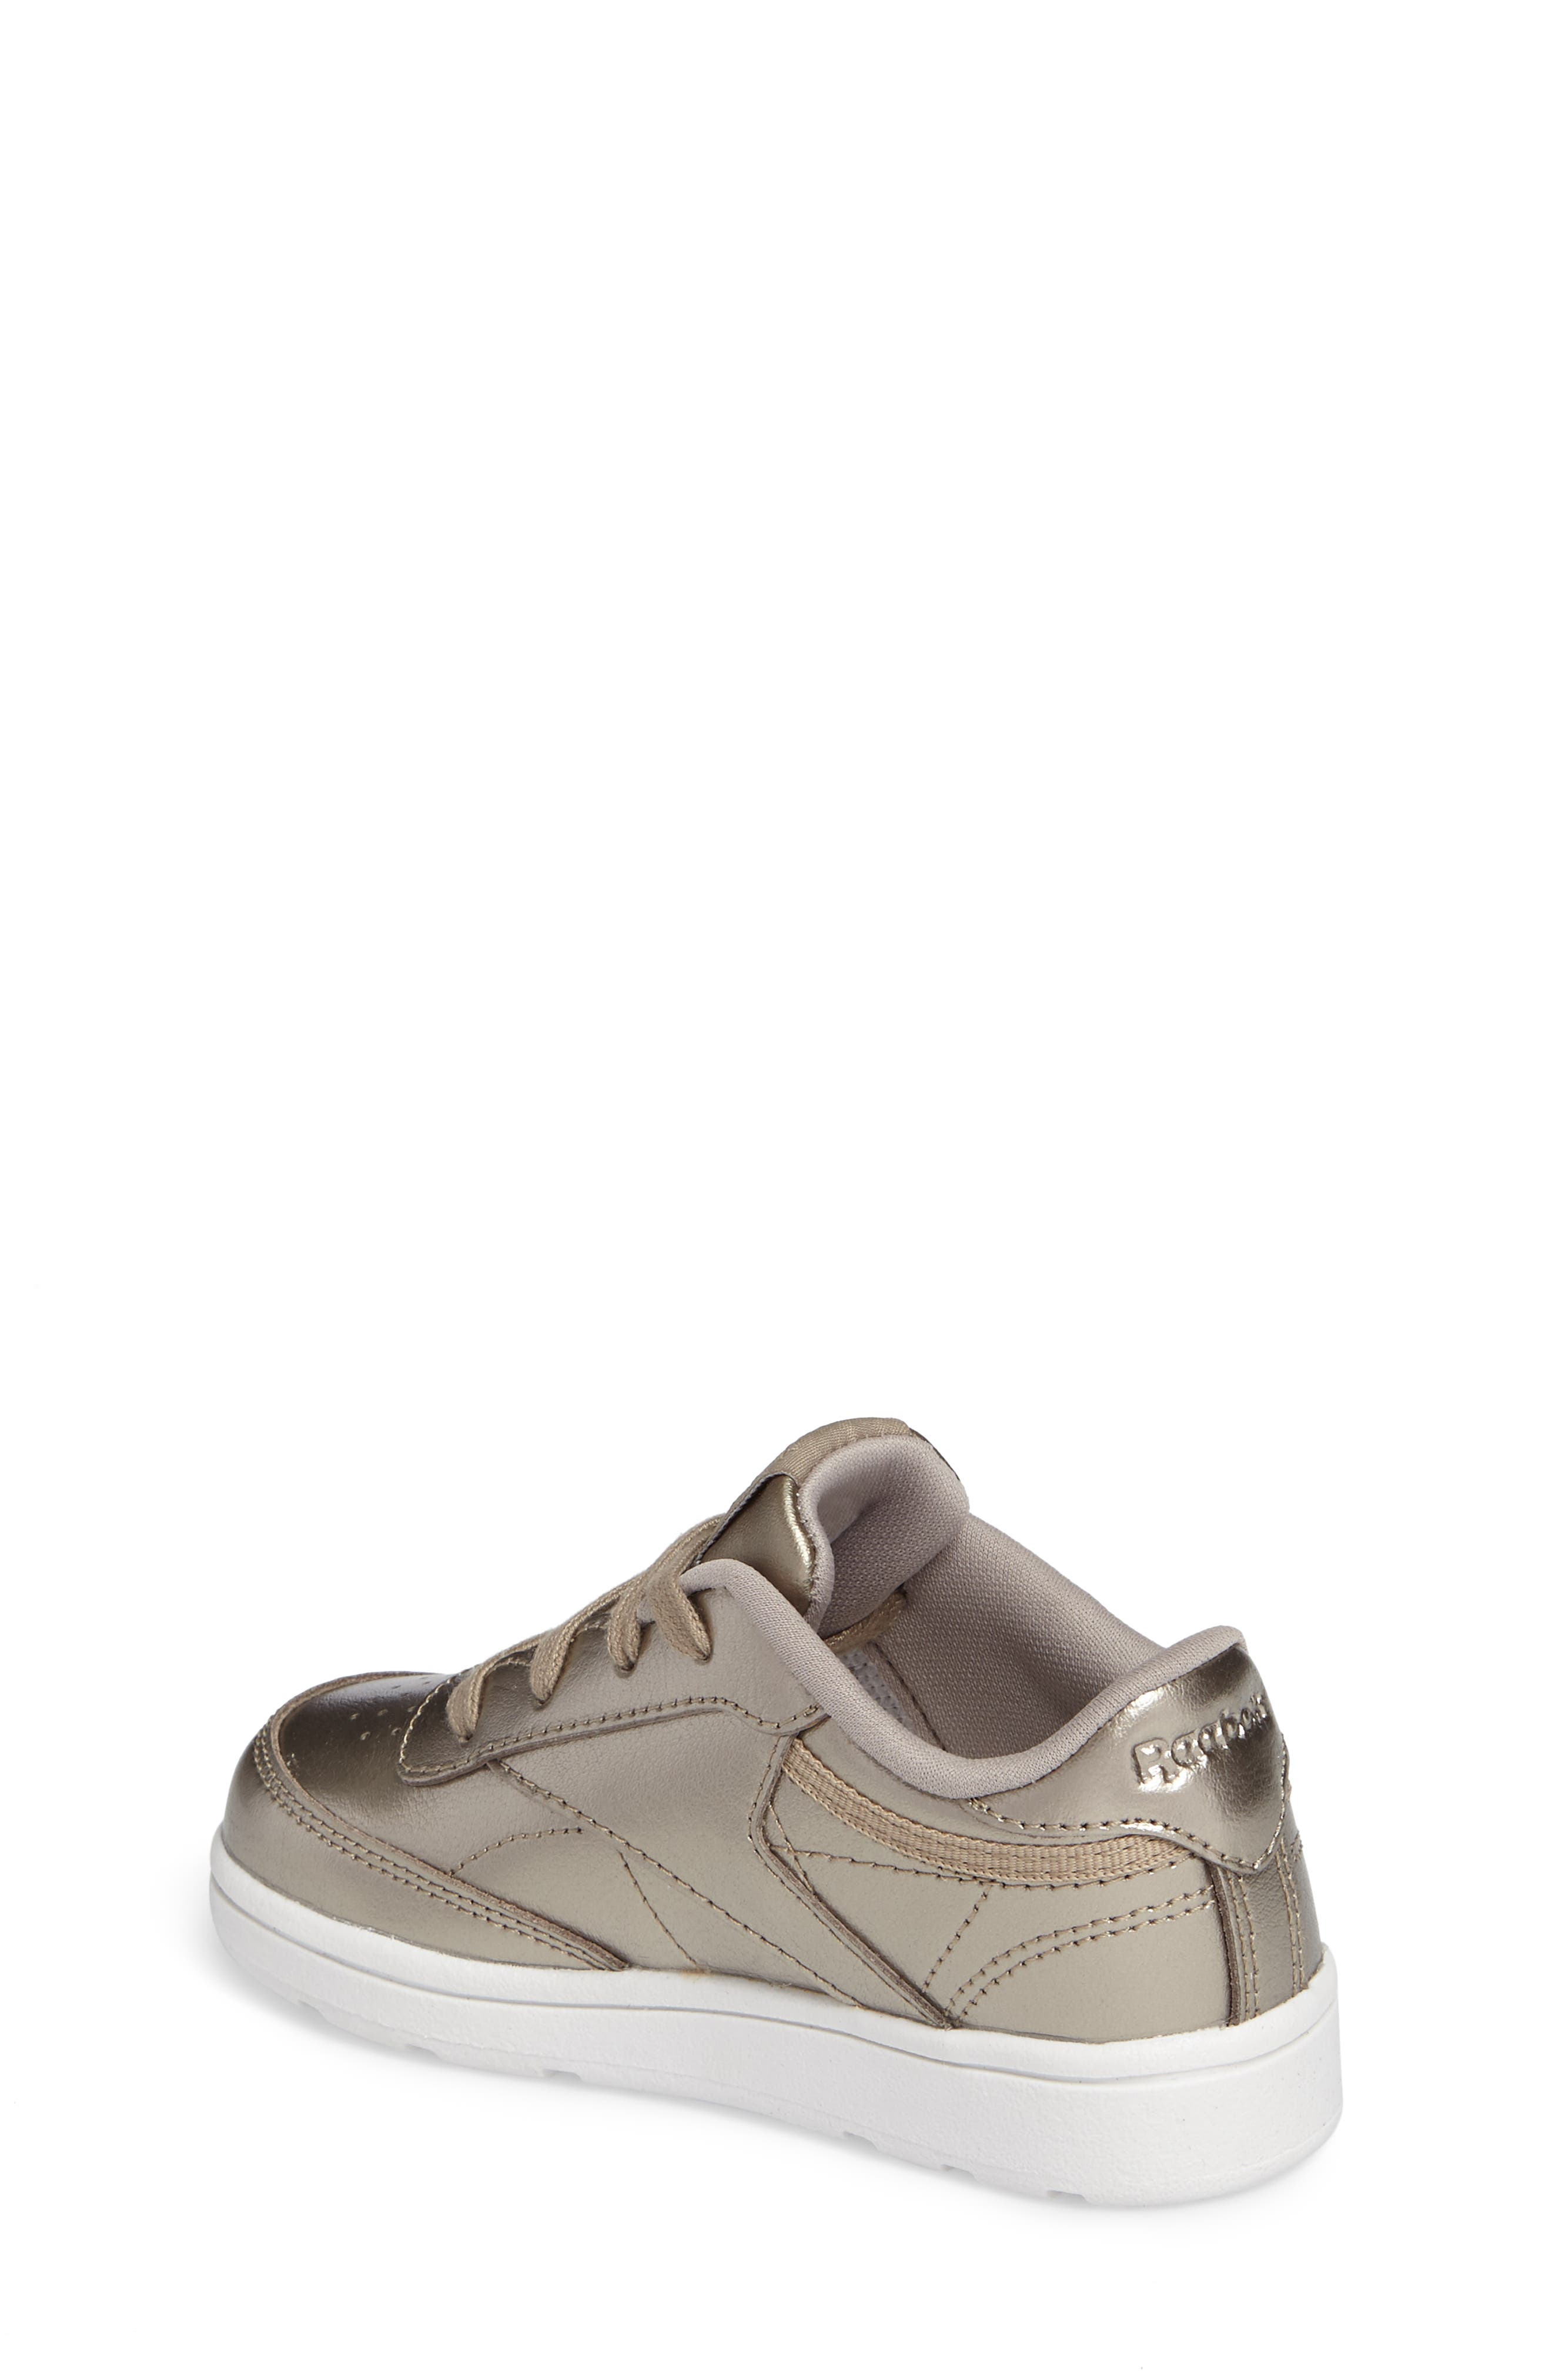 Alternate Image 2  - Reebok Club C Melted Metallic Sneaker (Baby, Walker & Toddler)